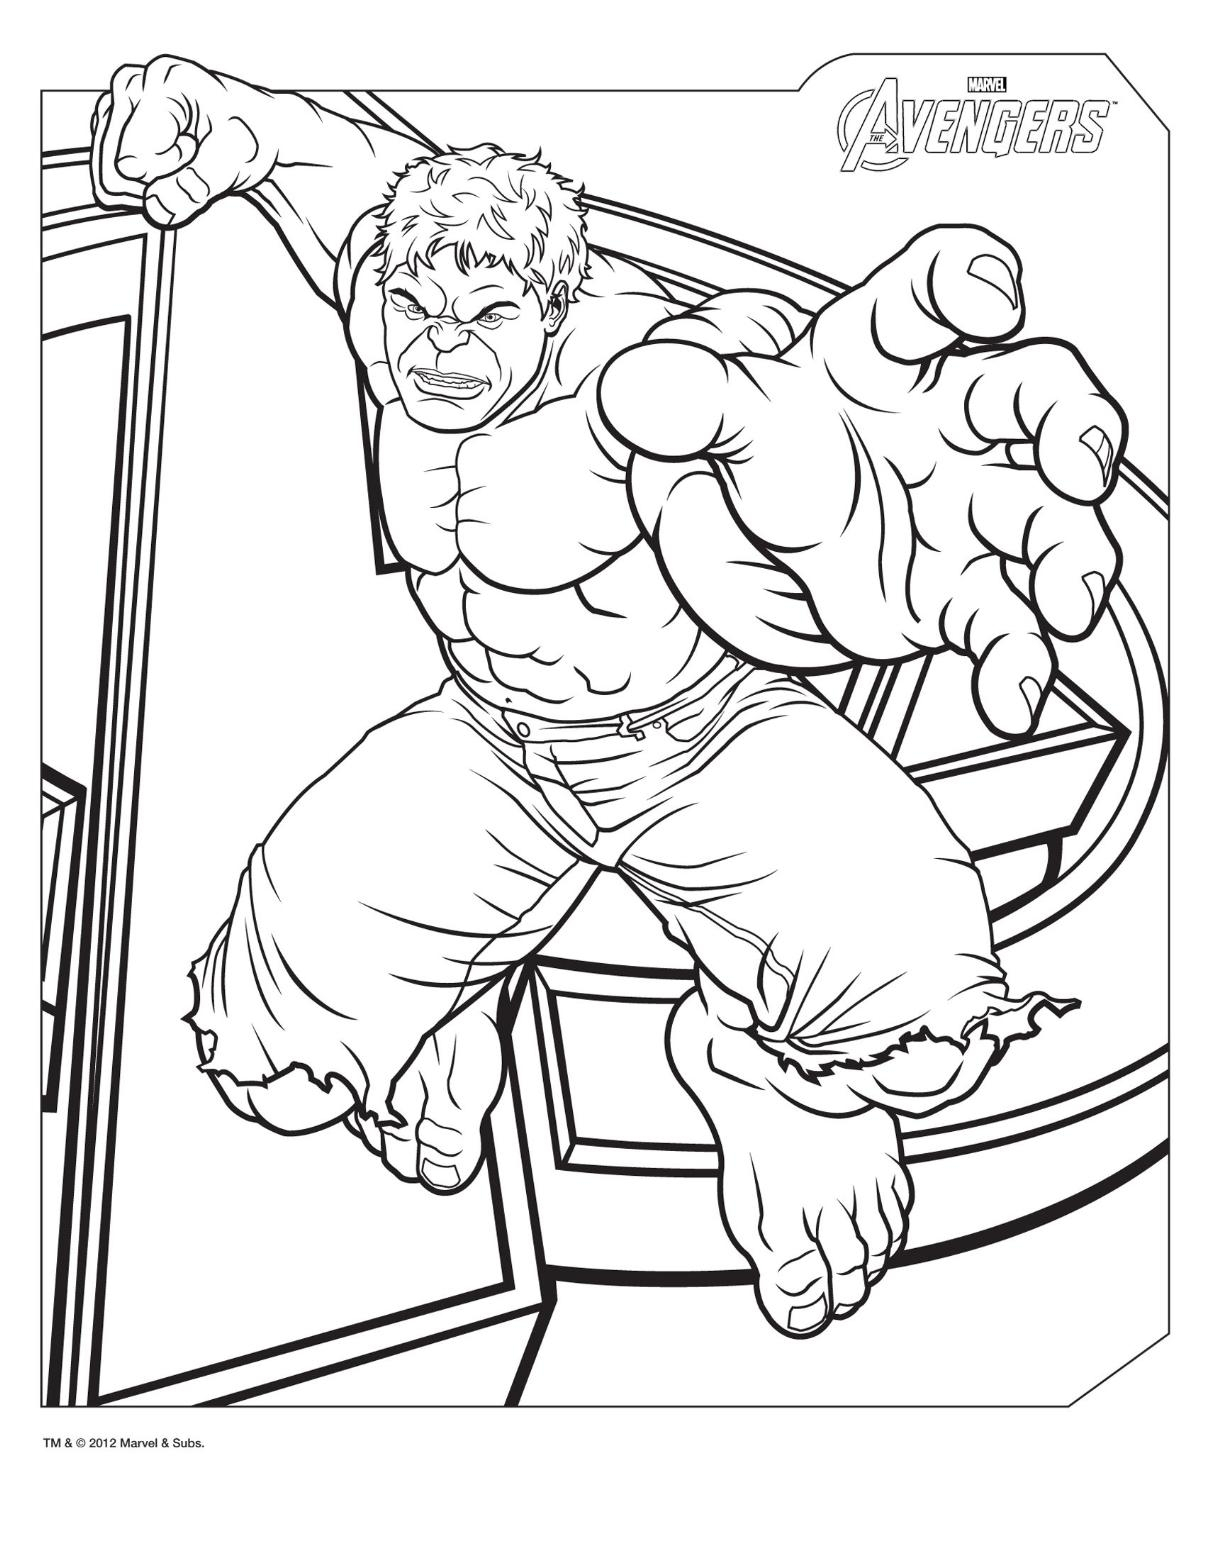 hulk coloring pages - marvel red hulk coloring page sketch templates